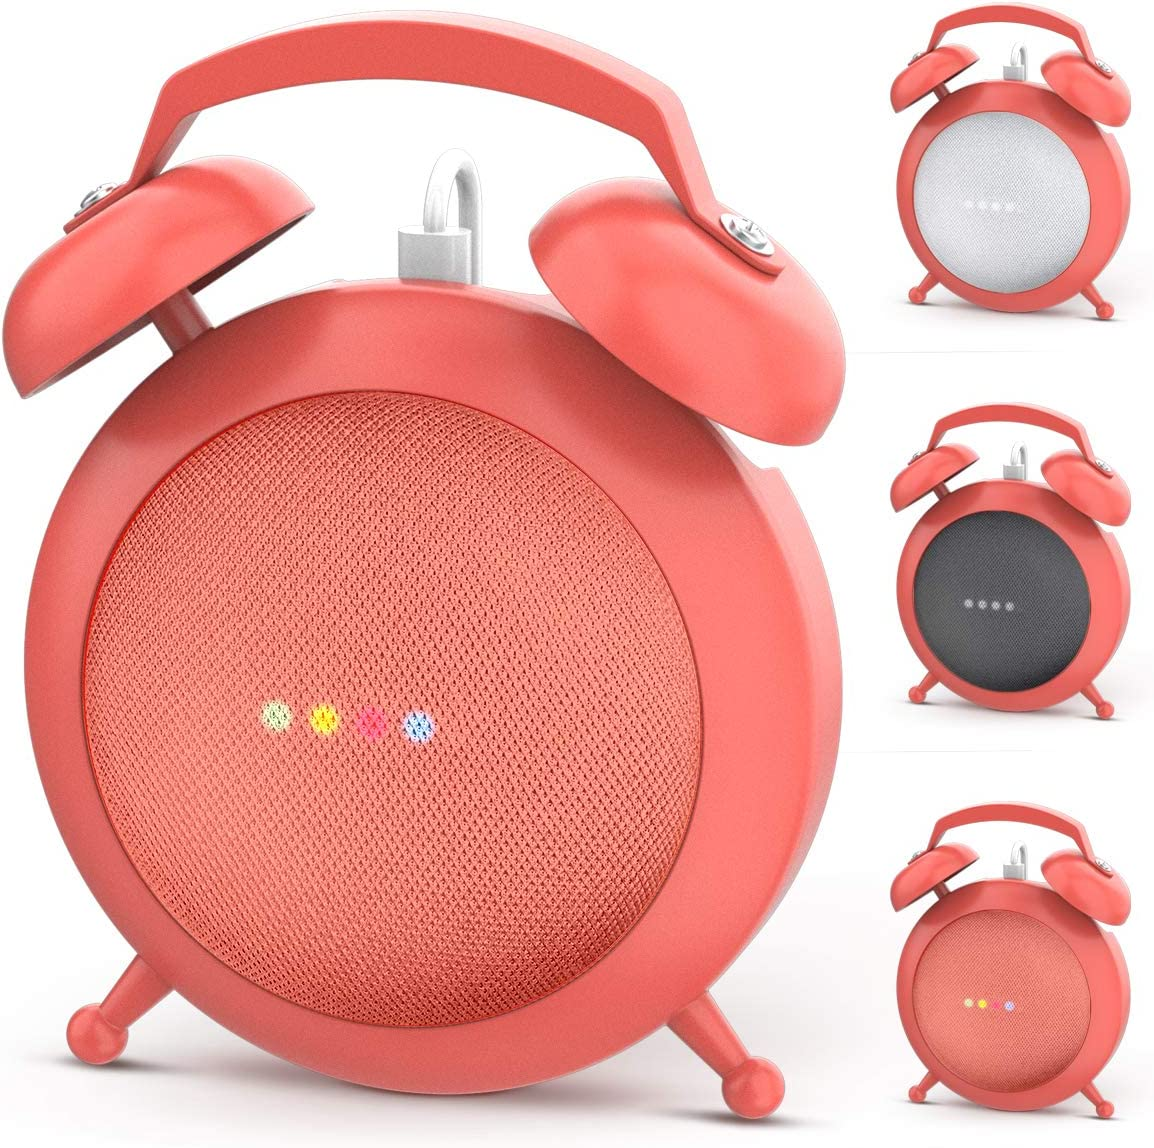 Google Home Mini Stand Holder, Retro Alarm Clock Stand Mount Base Protective Case Compatible with Google Home Mini and Nest Mini(Orange)